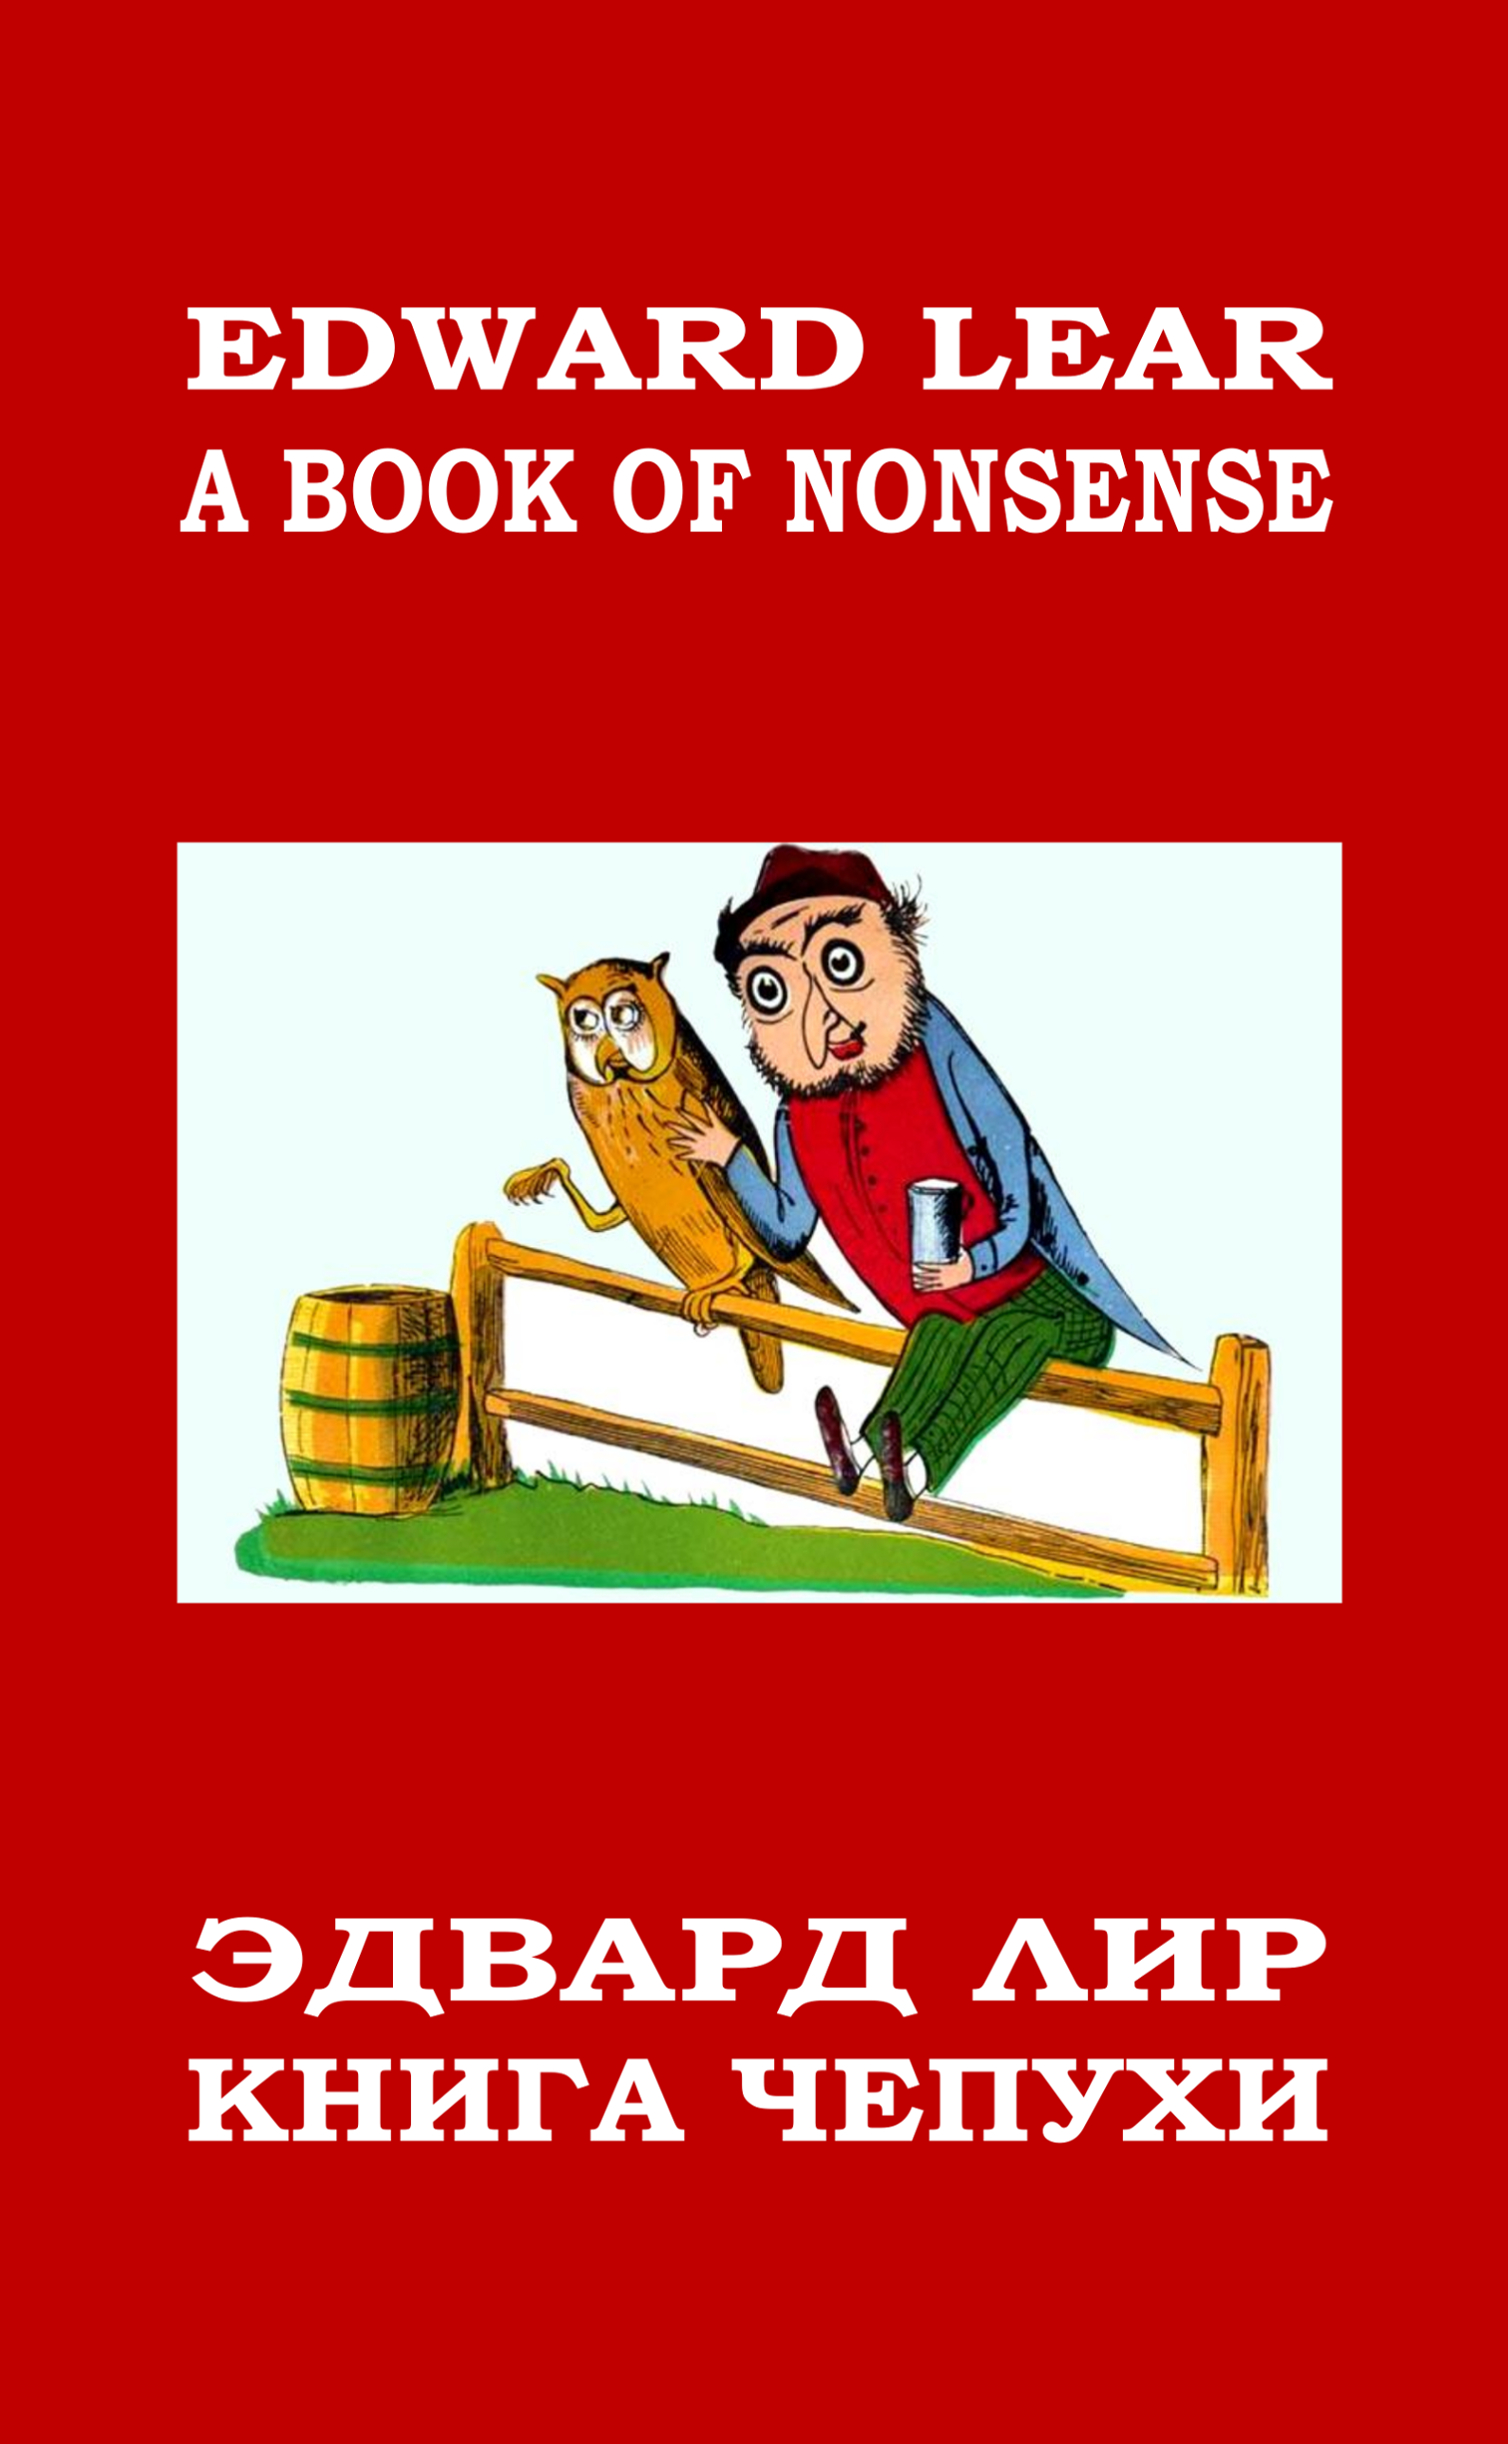 Edward Lear A Book of Nonsense cover 2017.jpg